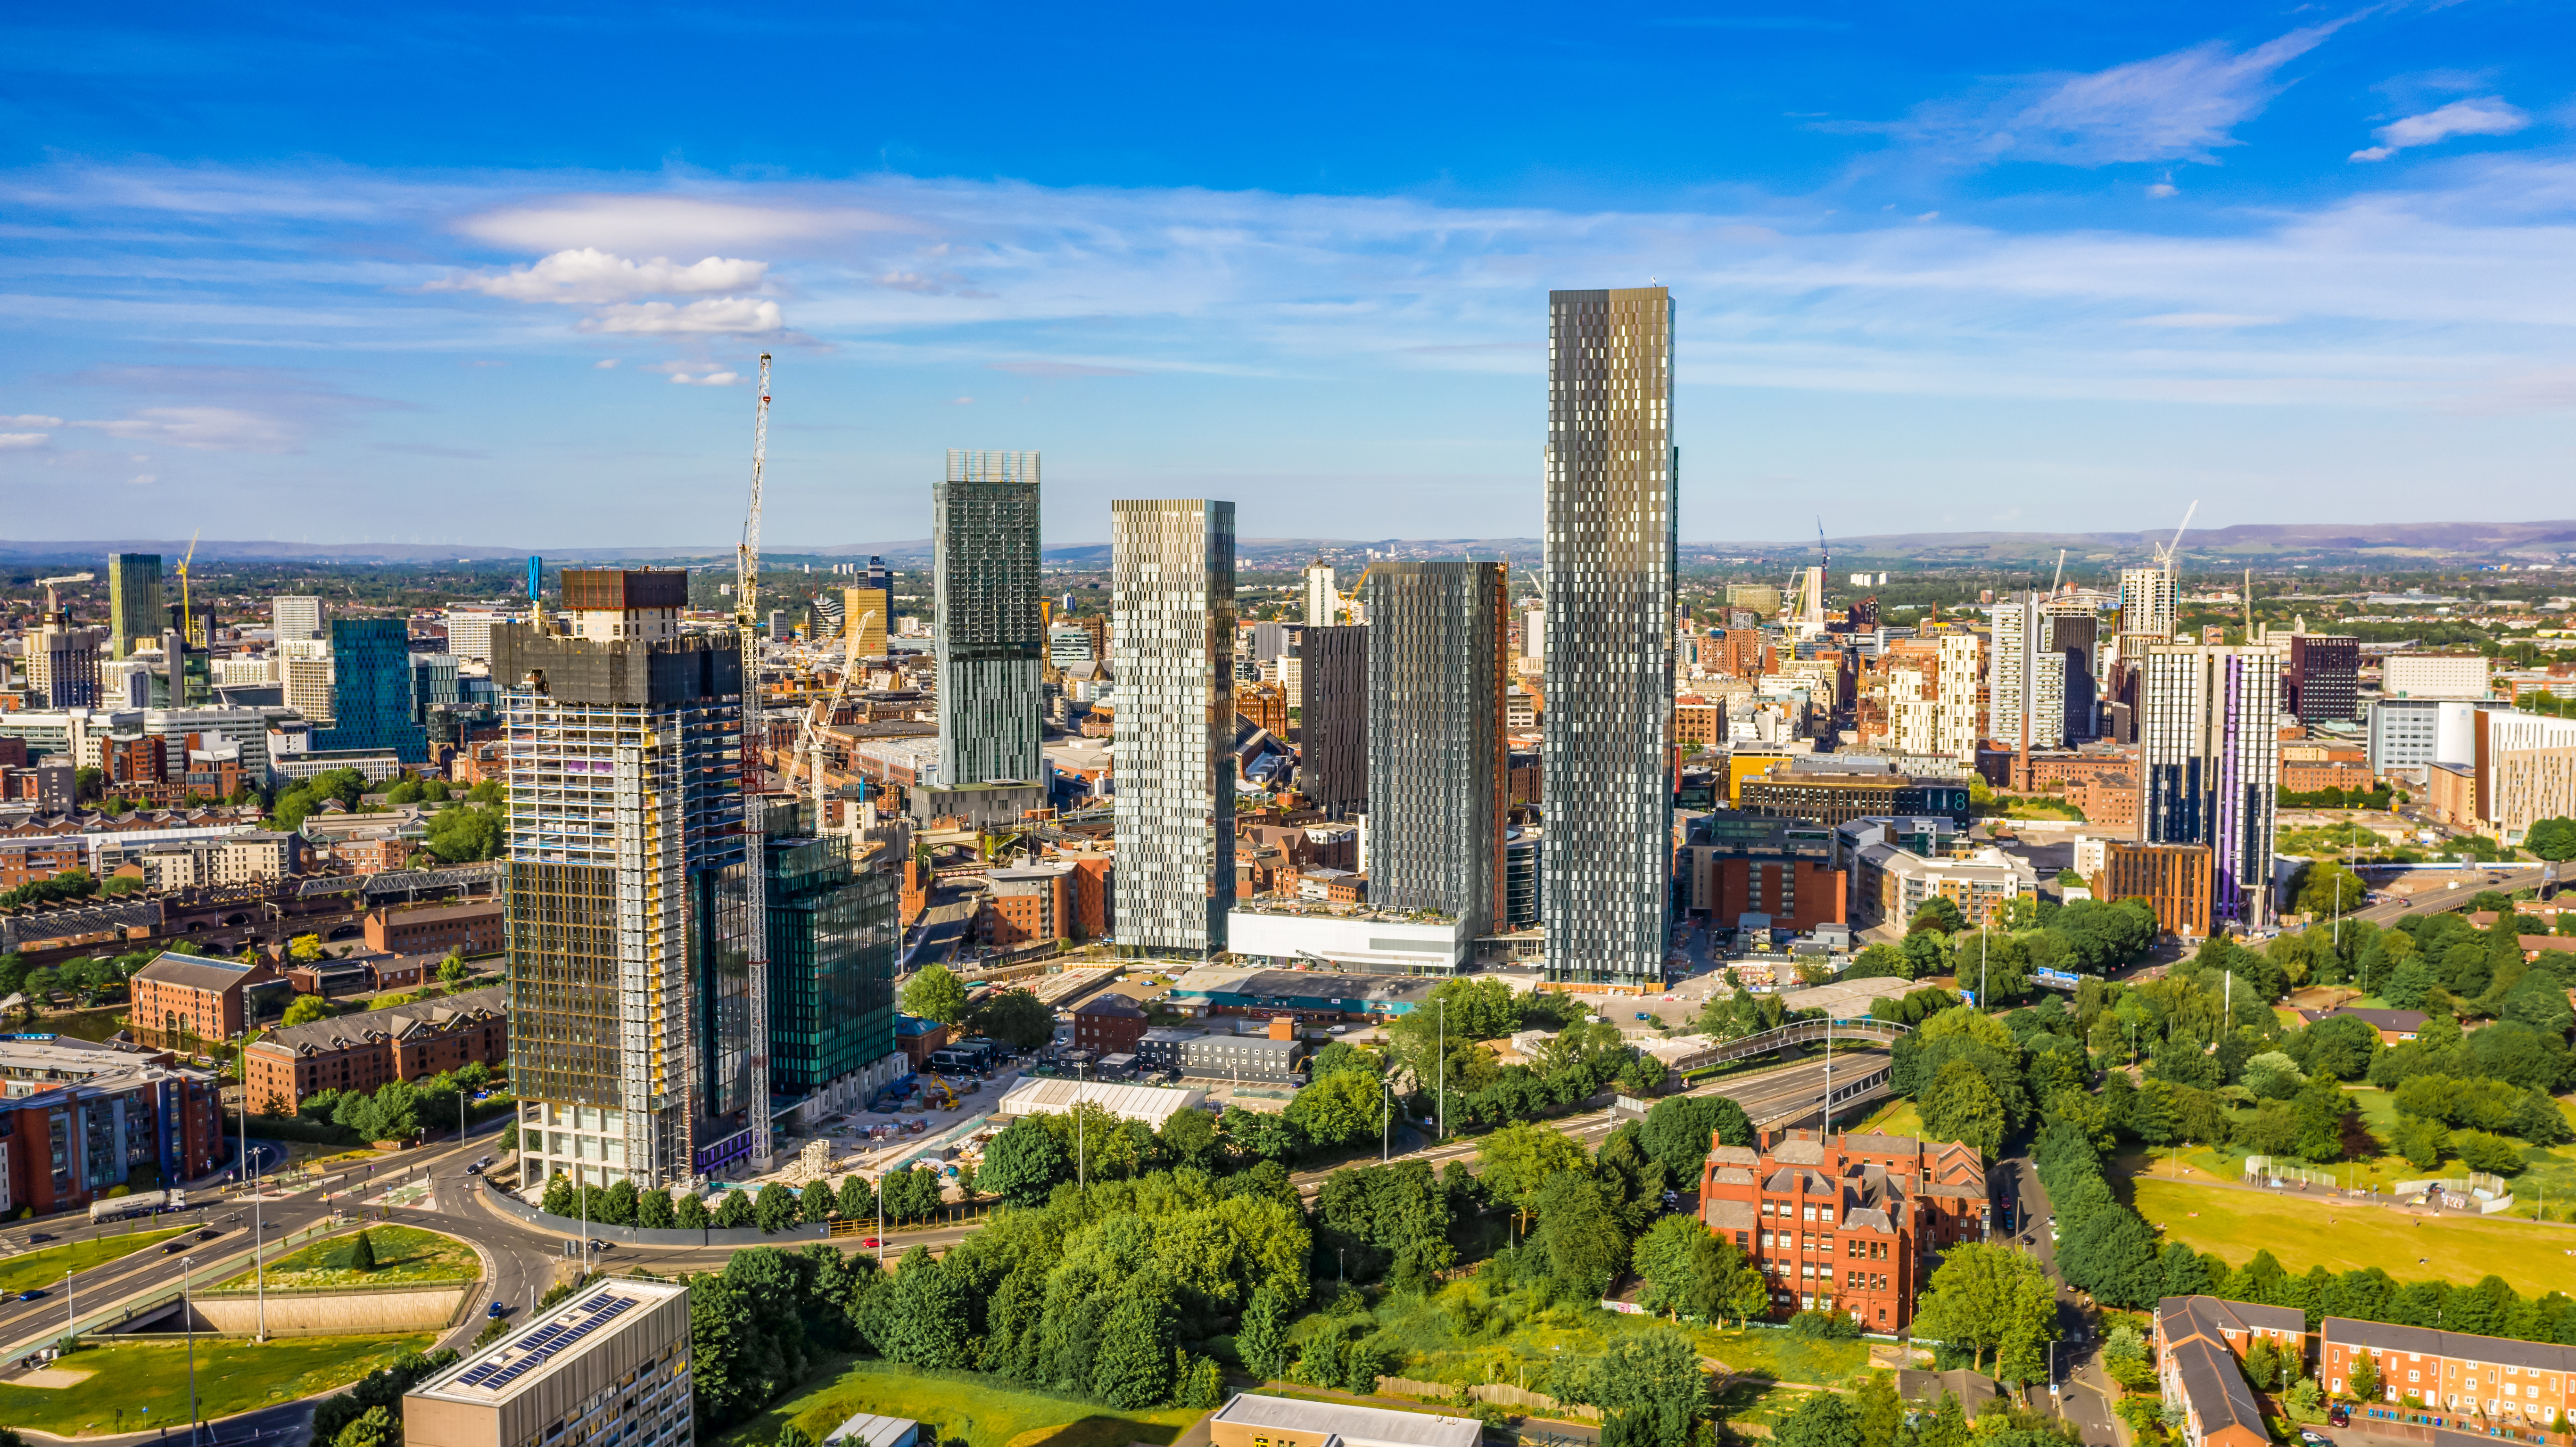 Manchester city centre aerial view